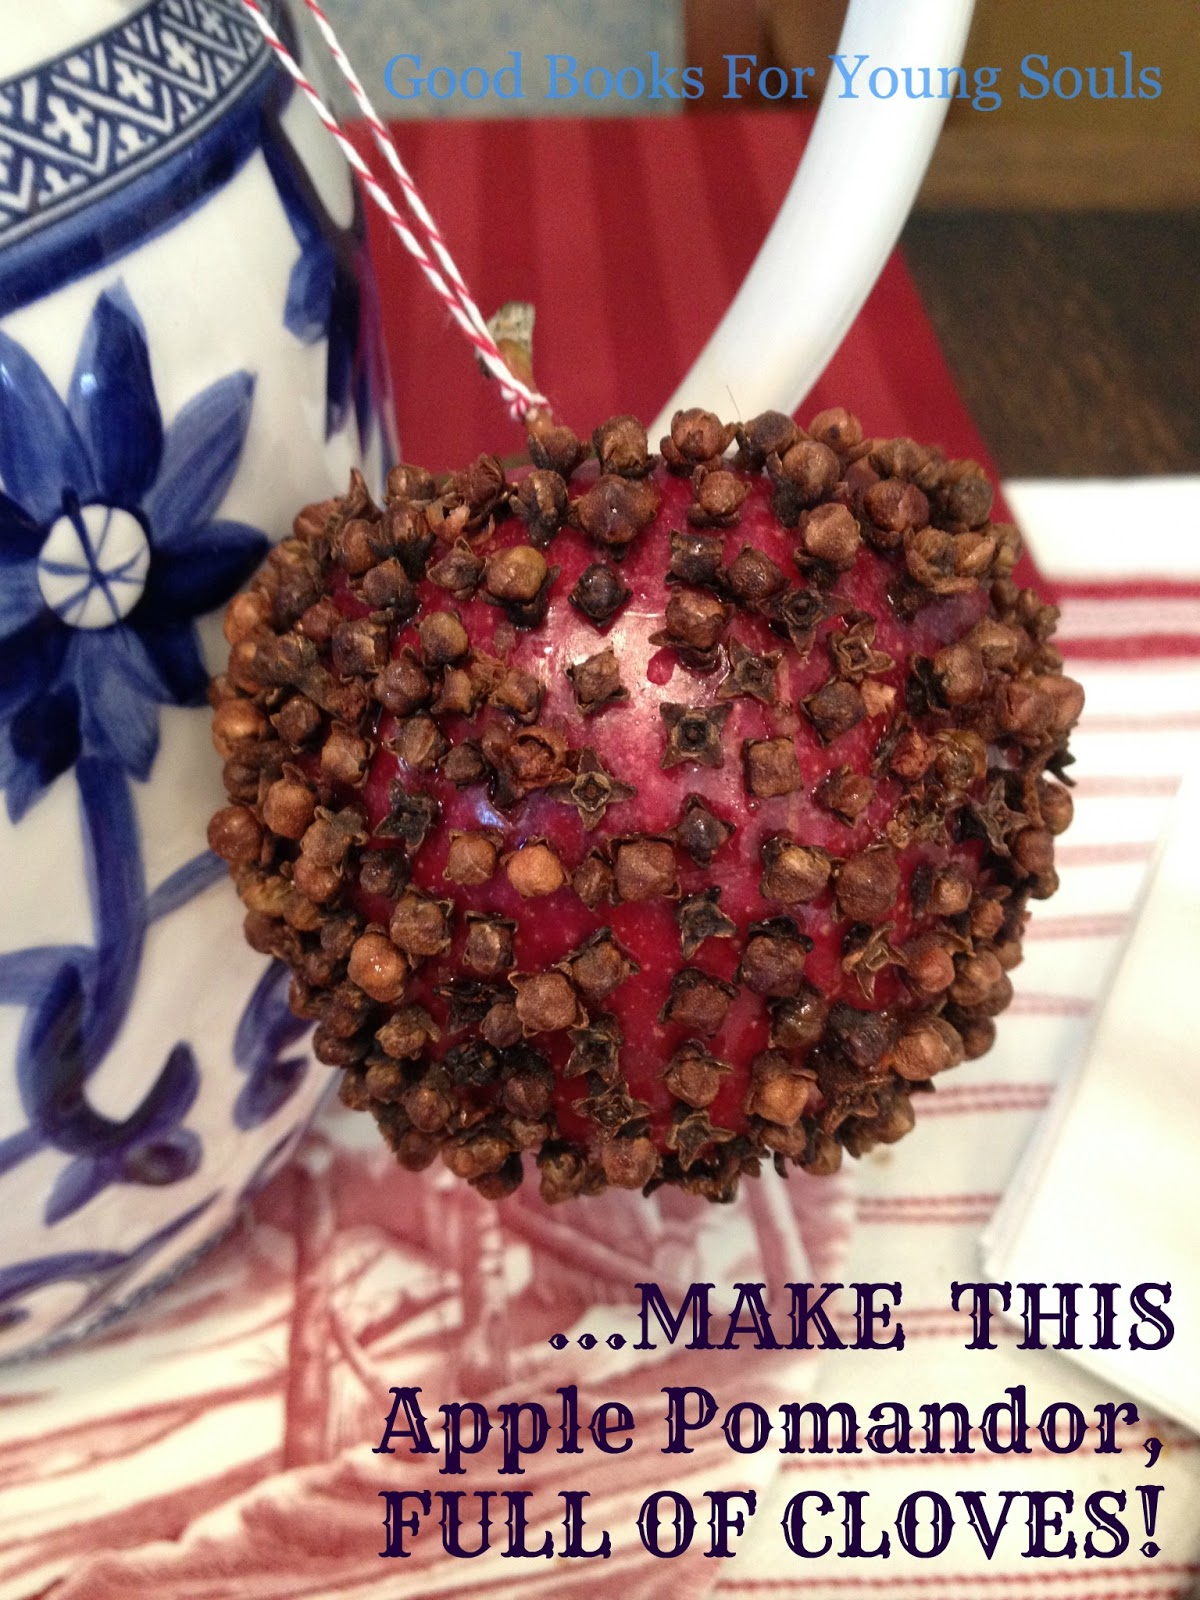 Discussion on this topic: How to Make a Clove Apple, how-to-make-a-clove-apple/